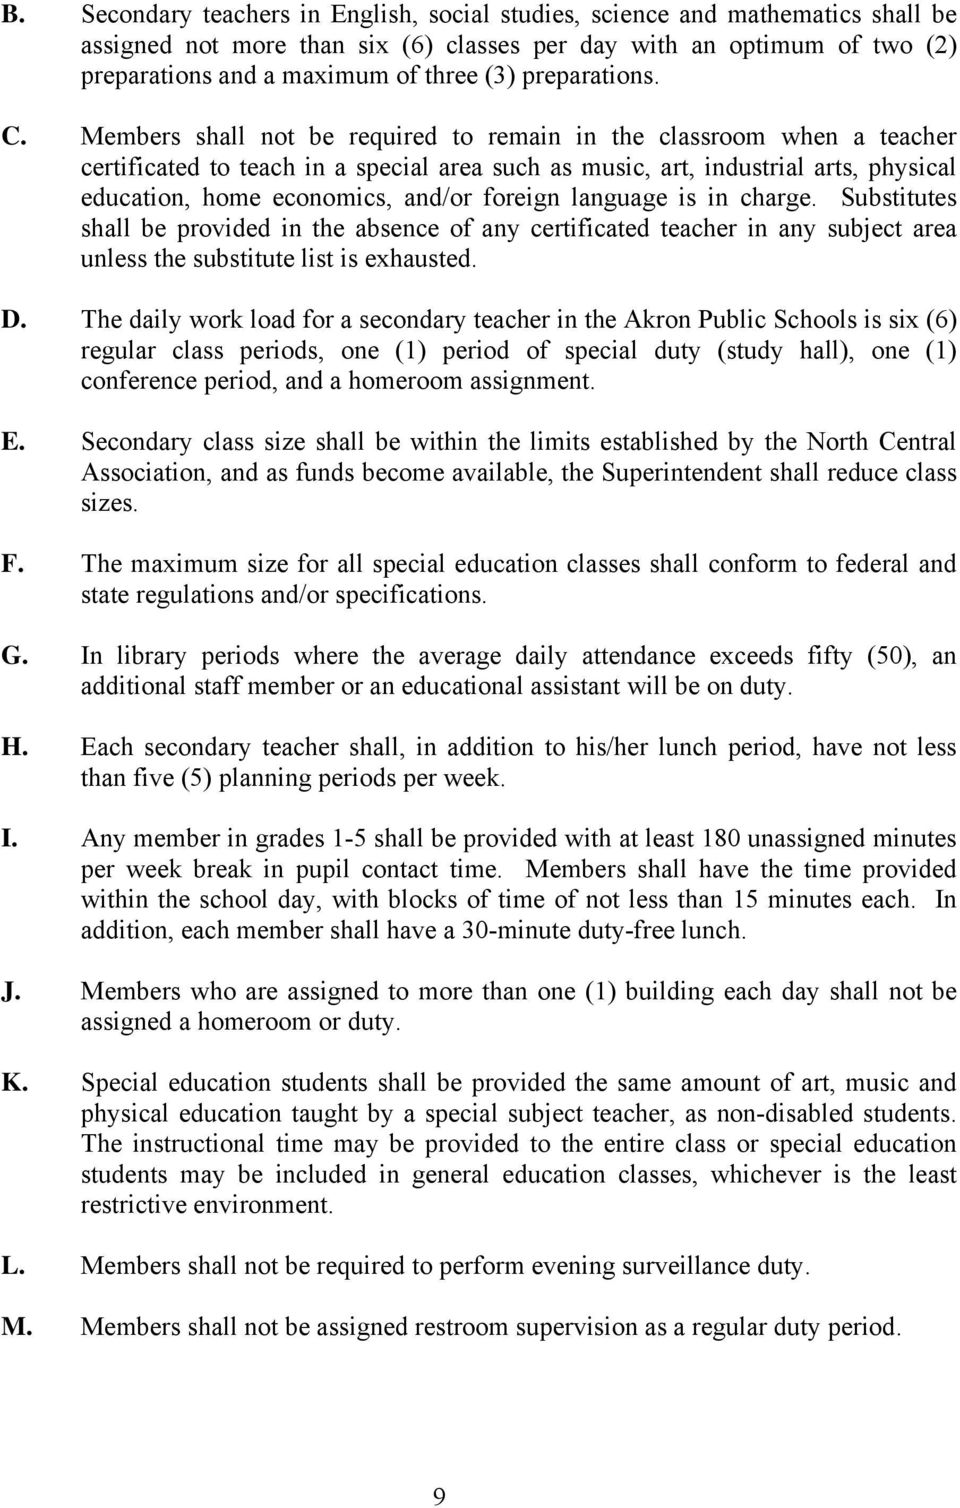 master agreement akron board of education akron public schools members shall not be required to remain in the classroom when a teacher certificated to teach